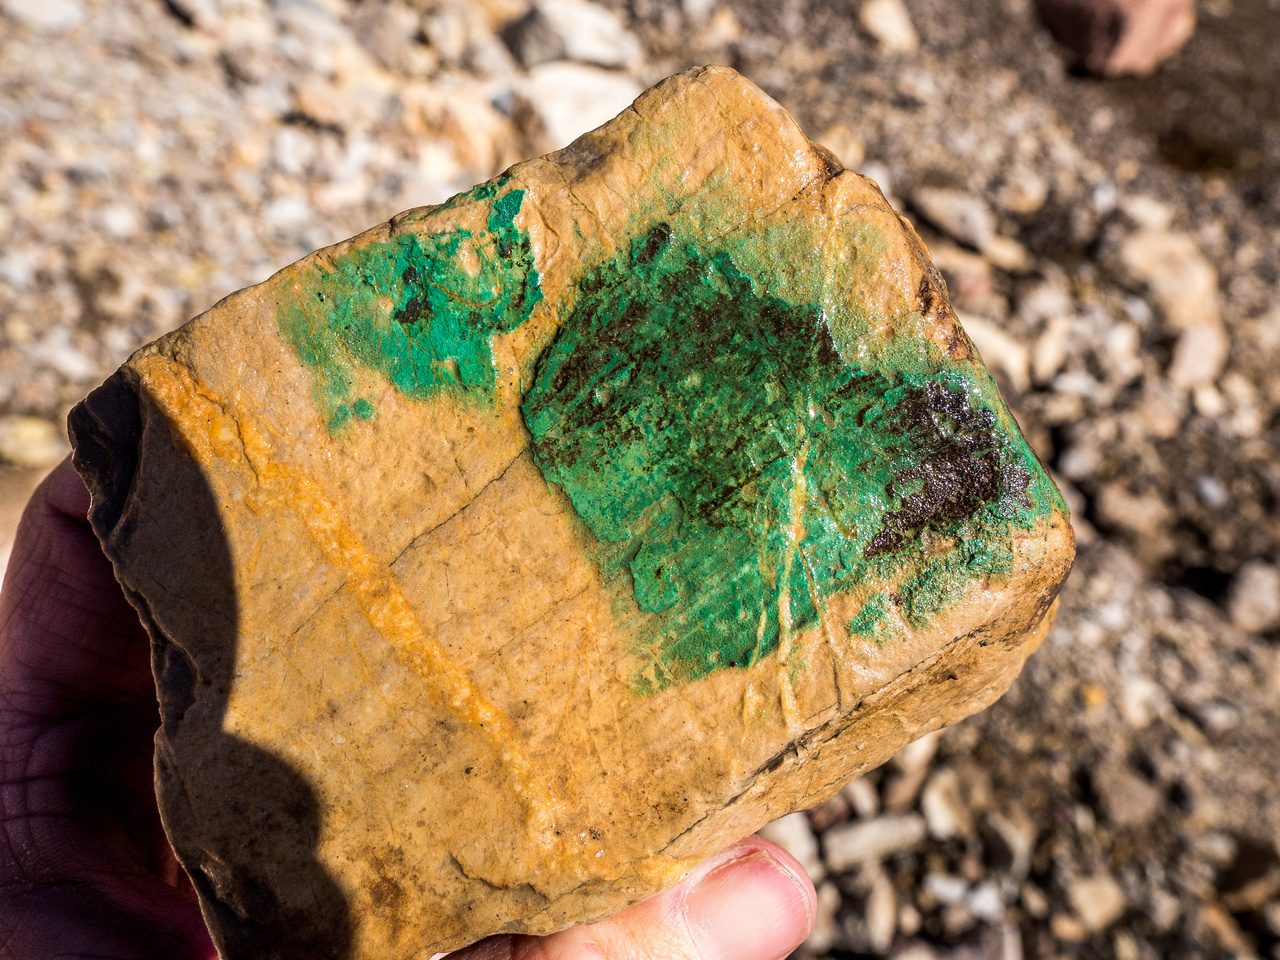 A very green coating on this rock. Not paint.